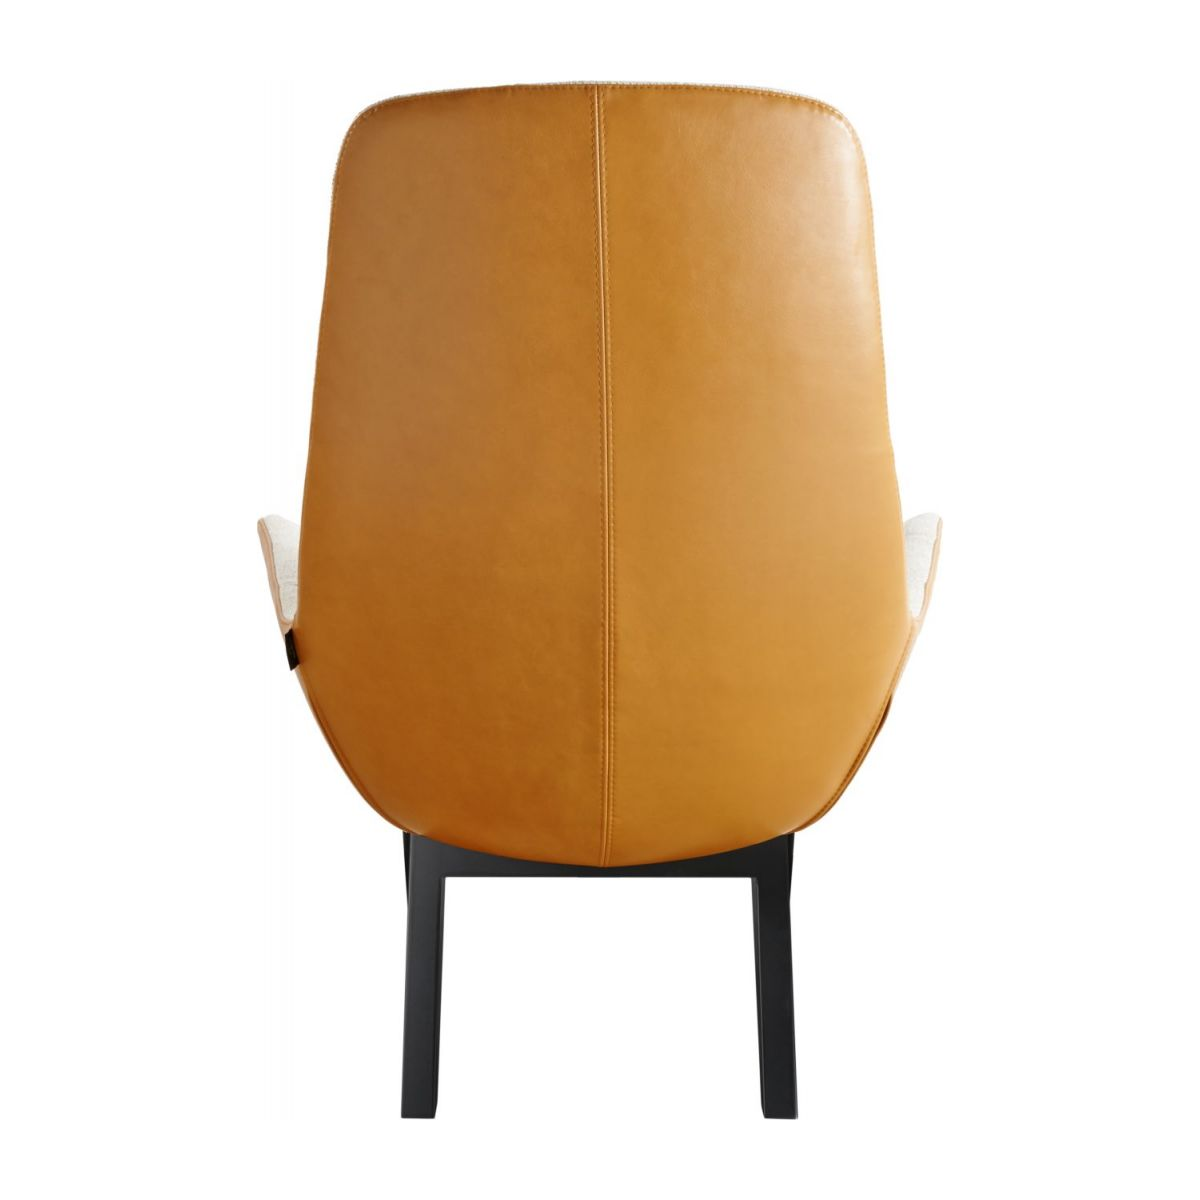 Armchair in Lecce fabric, nature and cognac vintage leather with dark oak legs n°3